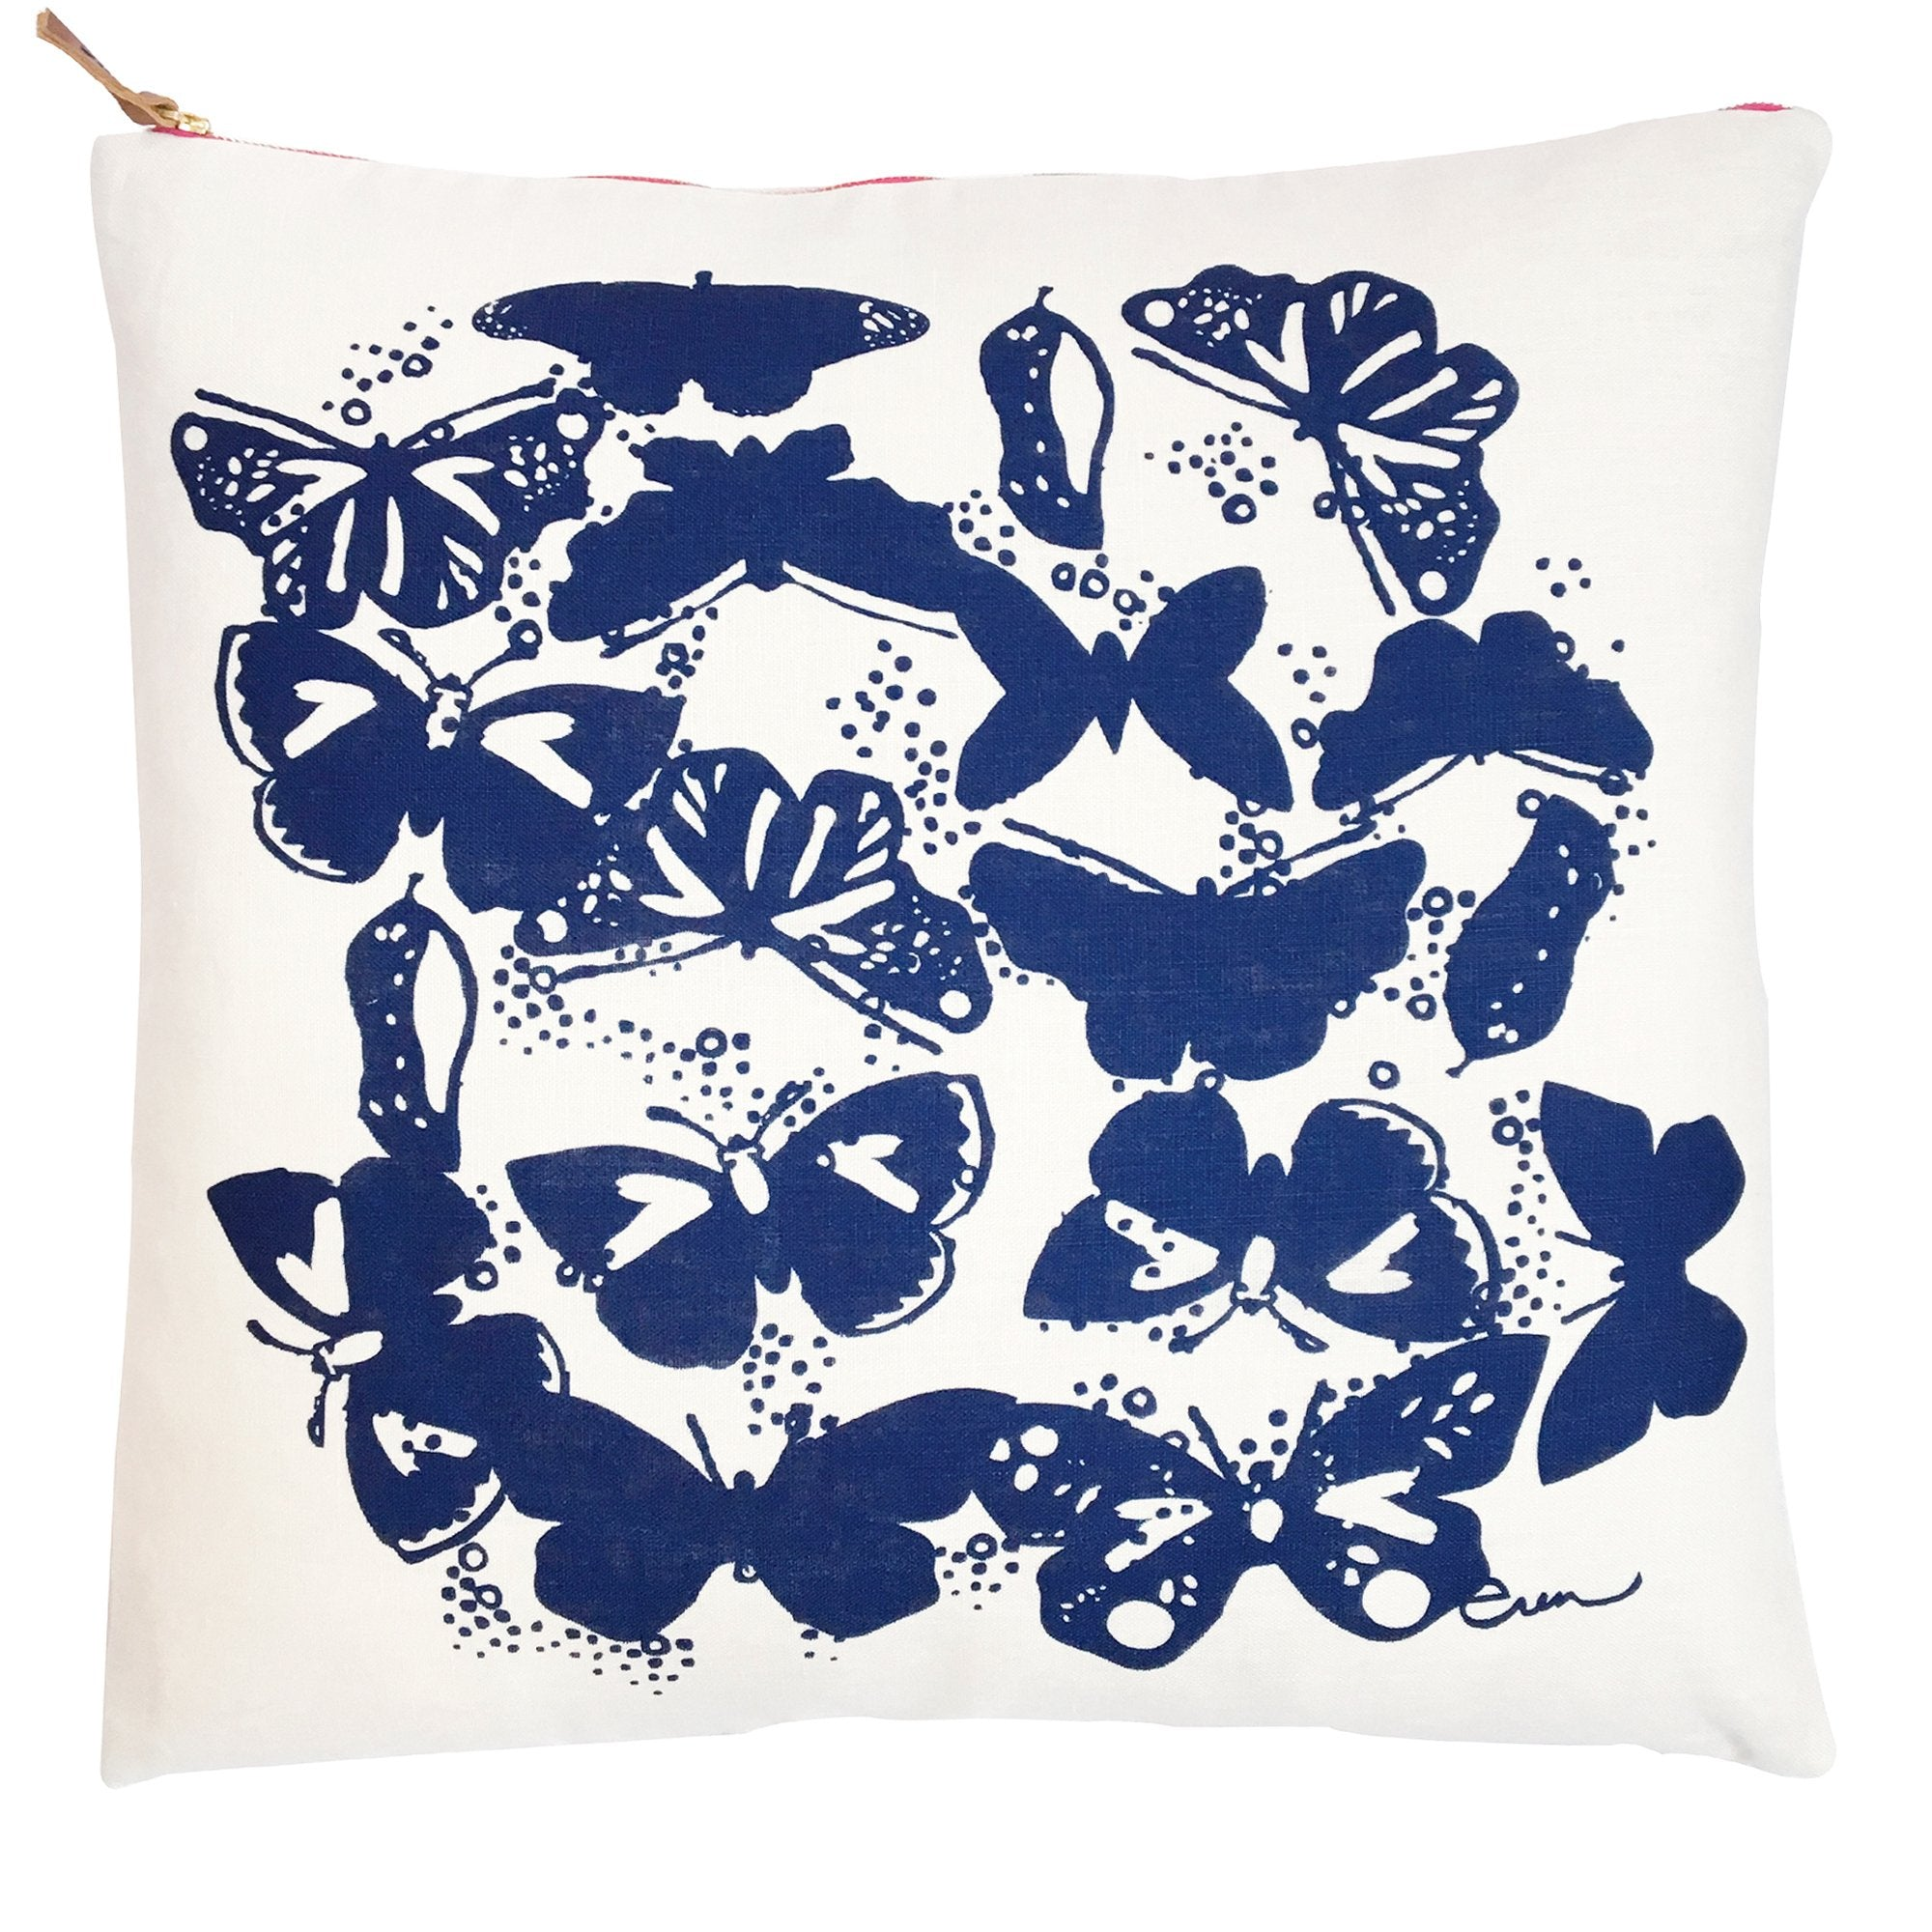 BUTTERFLIES NAVY LINEN PILLOW COVER